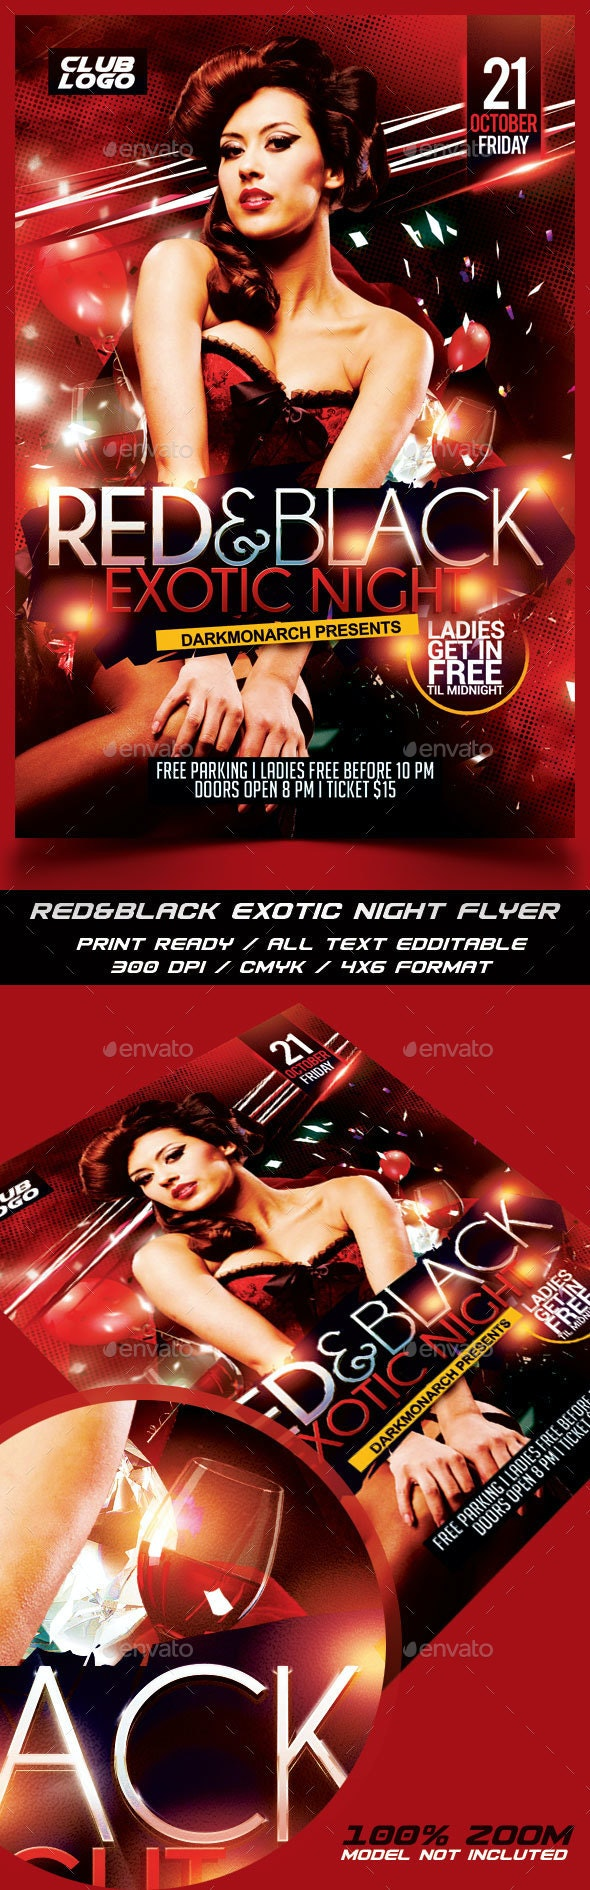 Red&Black Exotic Night Flyer - Events Flyers